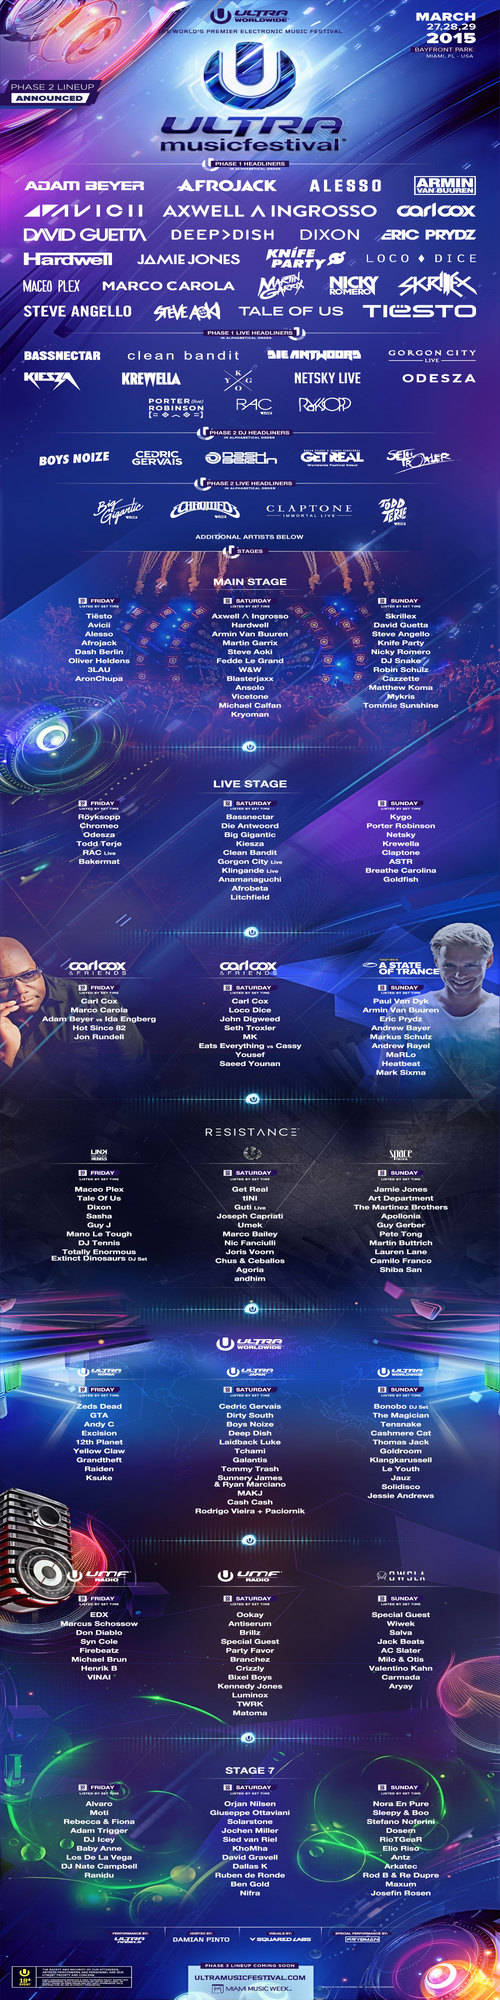 Ultra Music Festival Announces Phase 2 Lineup For 2015